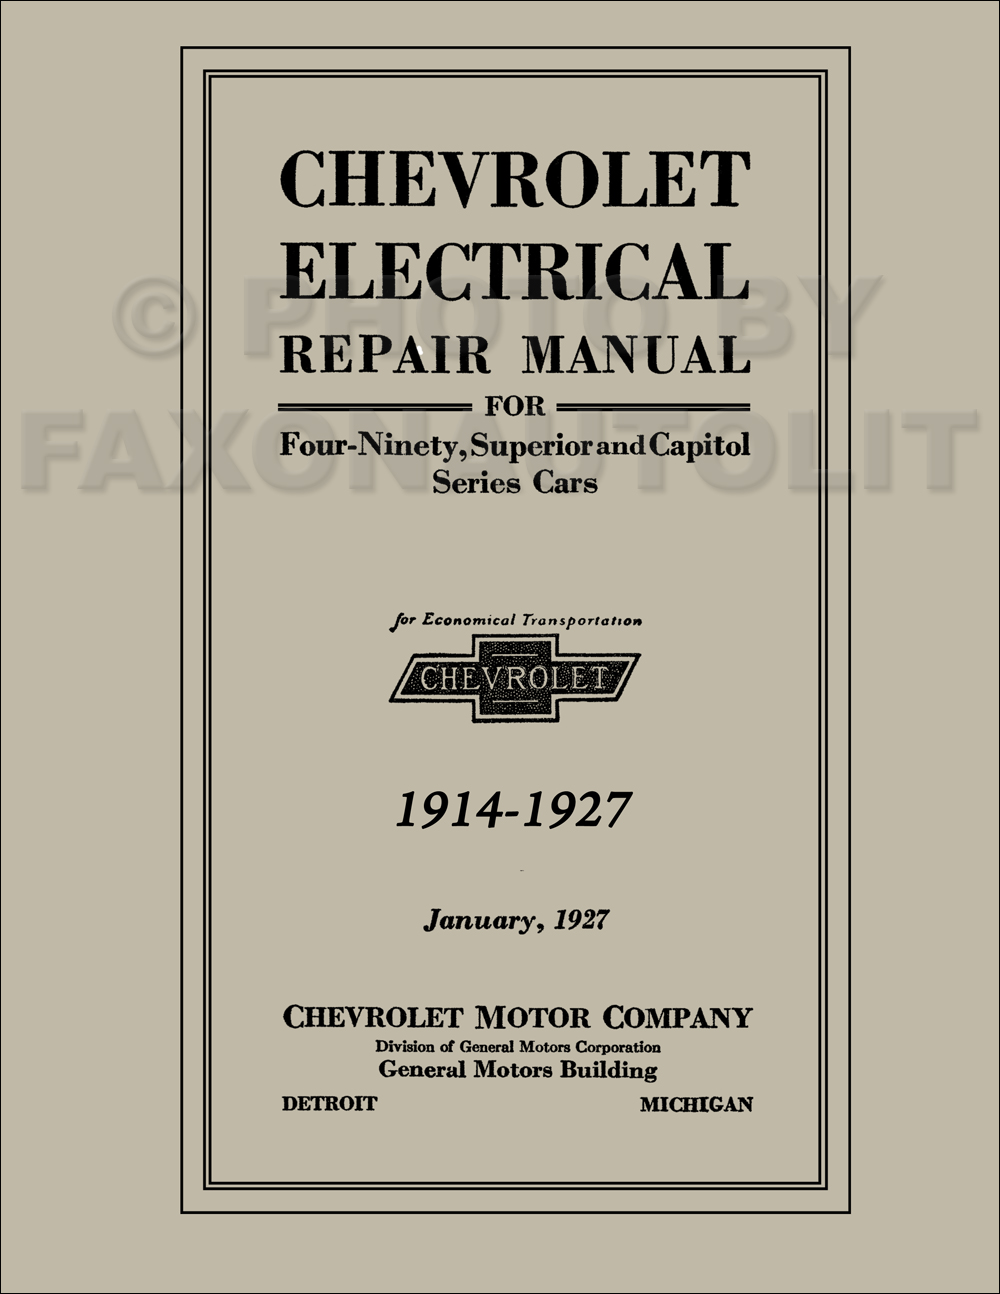 1914-1927 Chevrolet Electrical Repair Manual Reprint